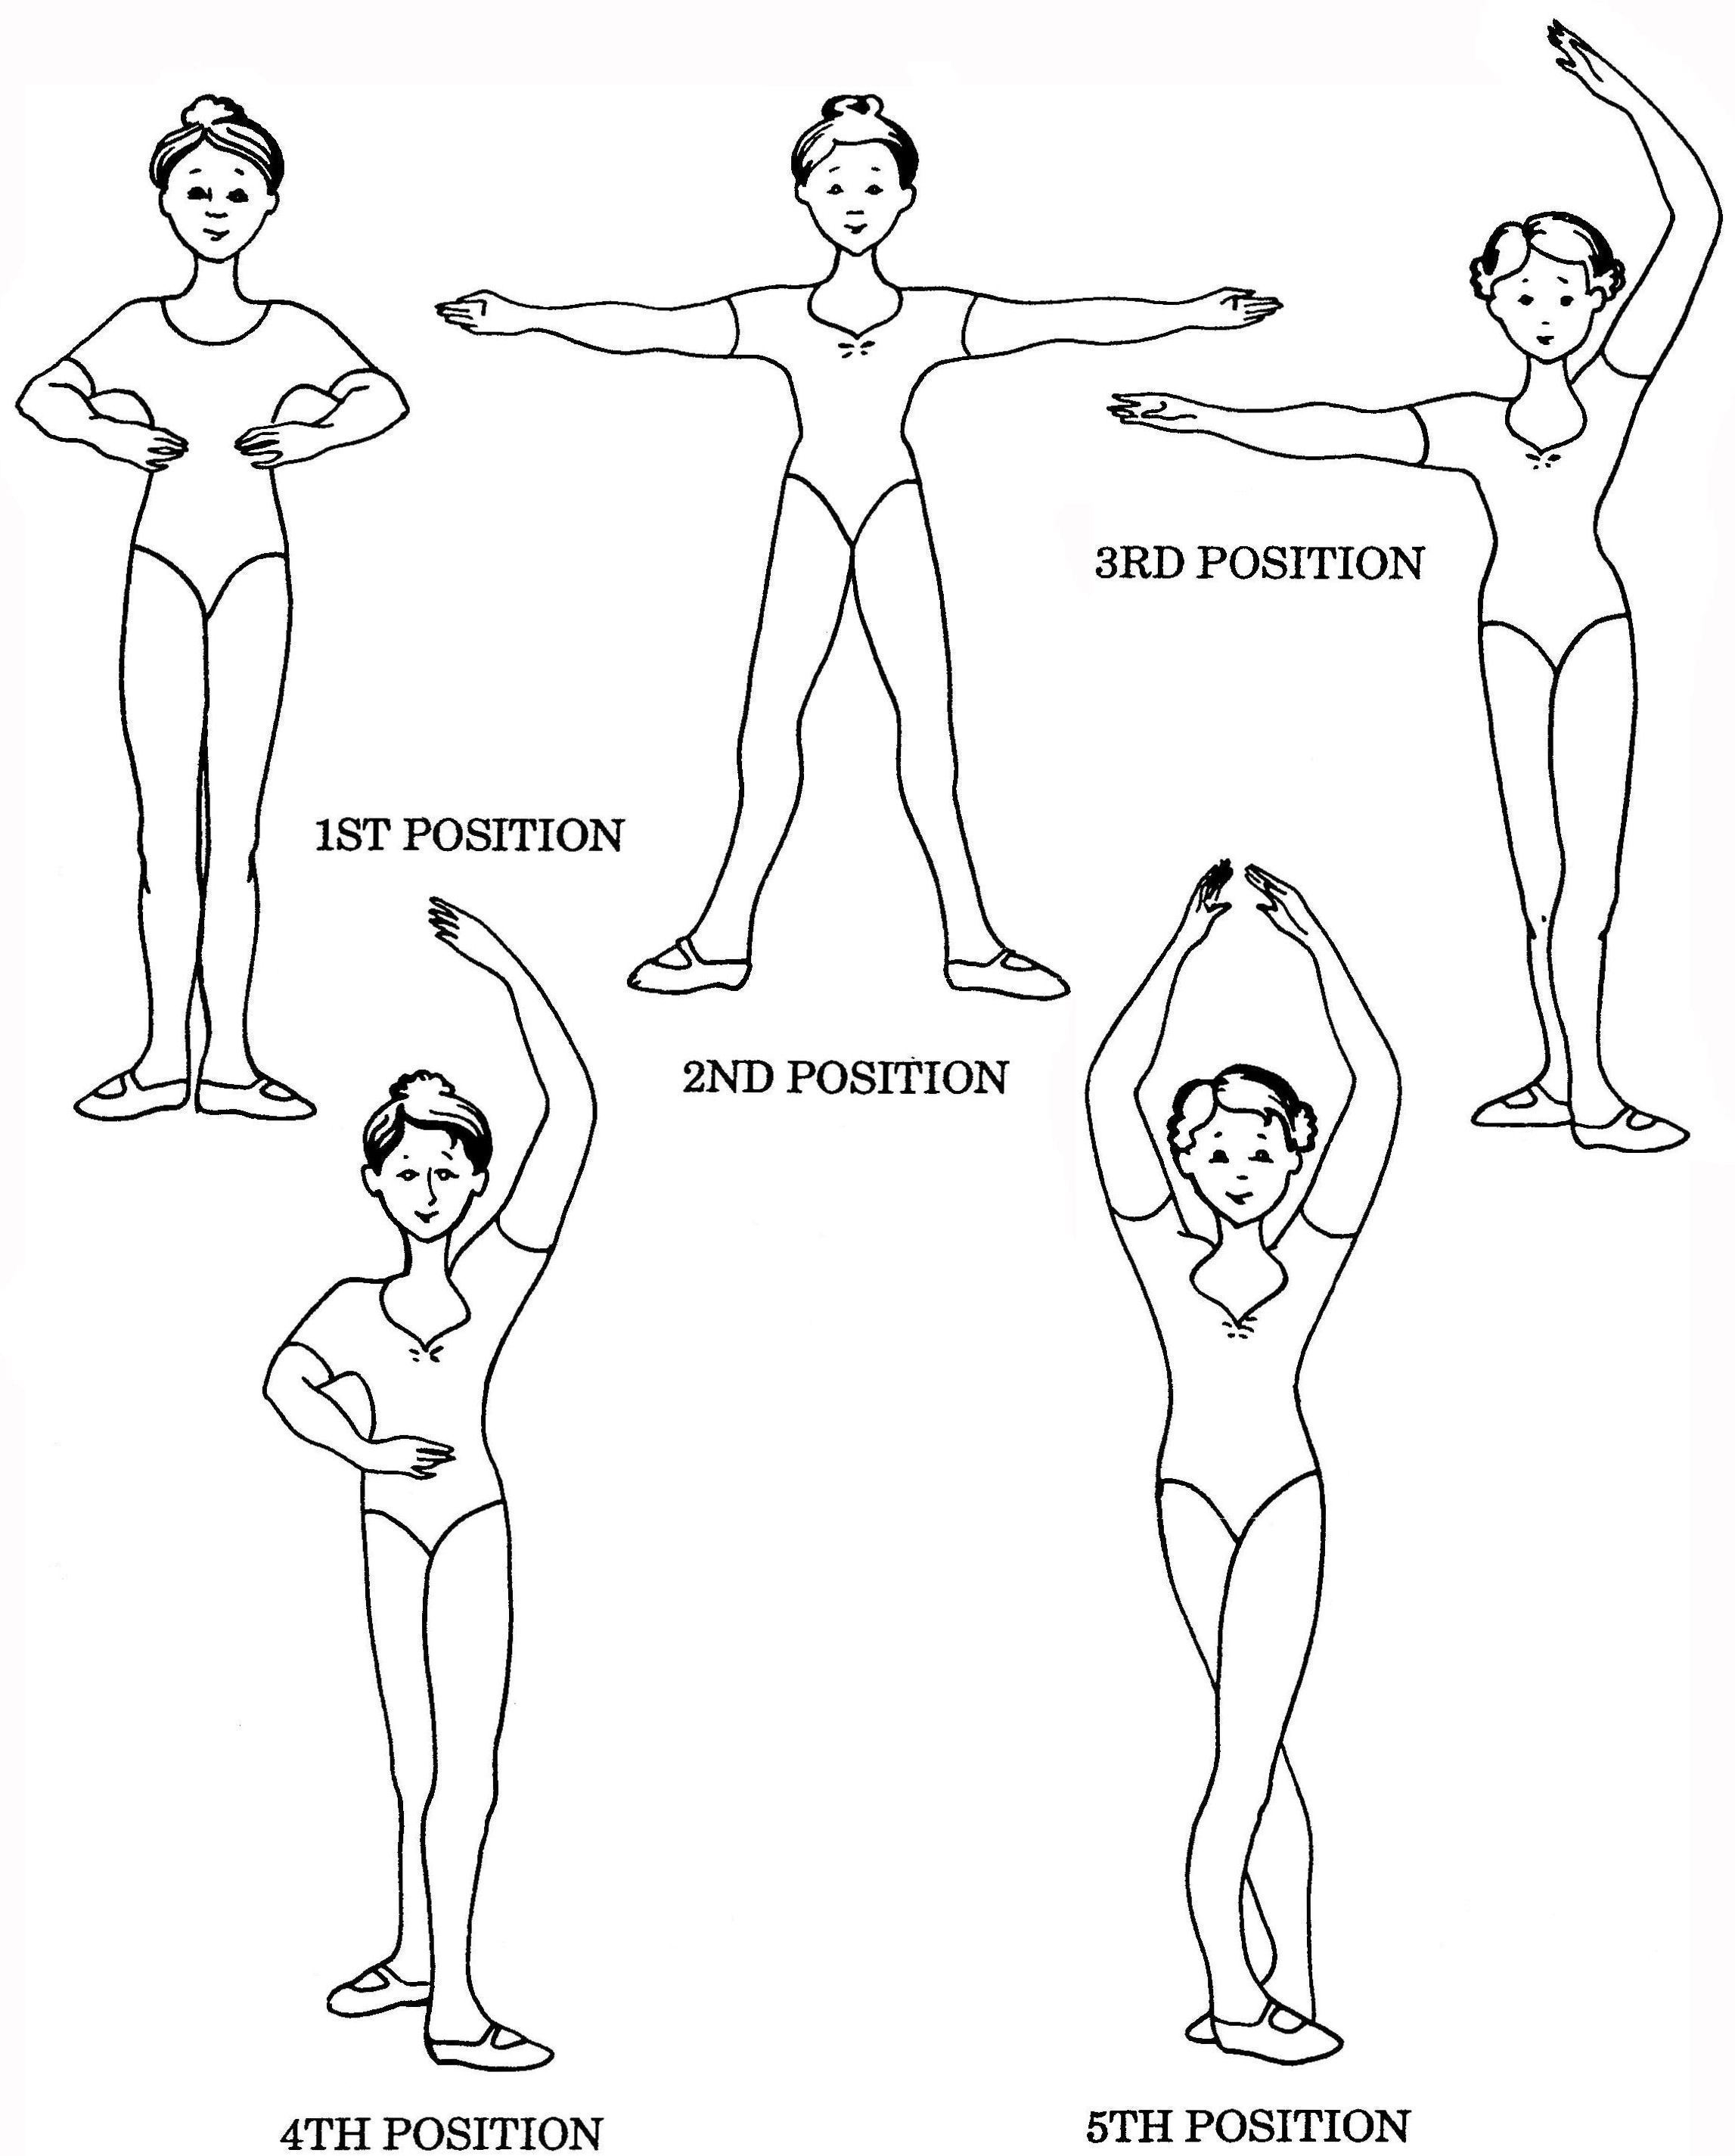 all 5 ballet positions | Ballet | Pinterest | Ballet, Baile y Ejercicios